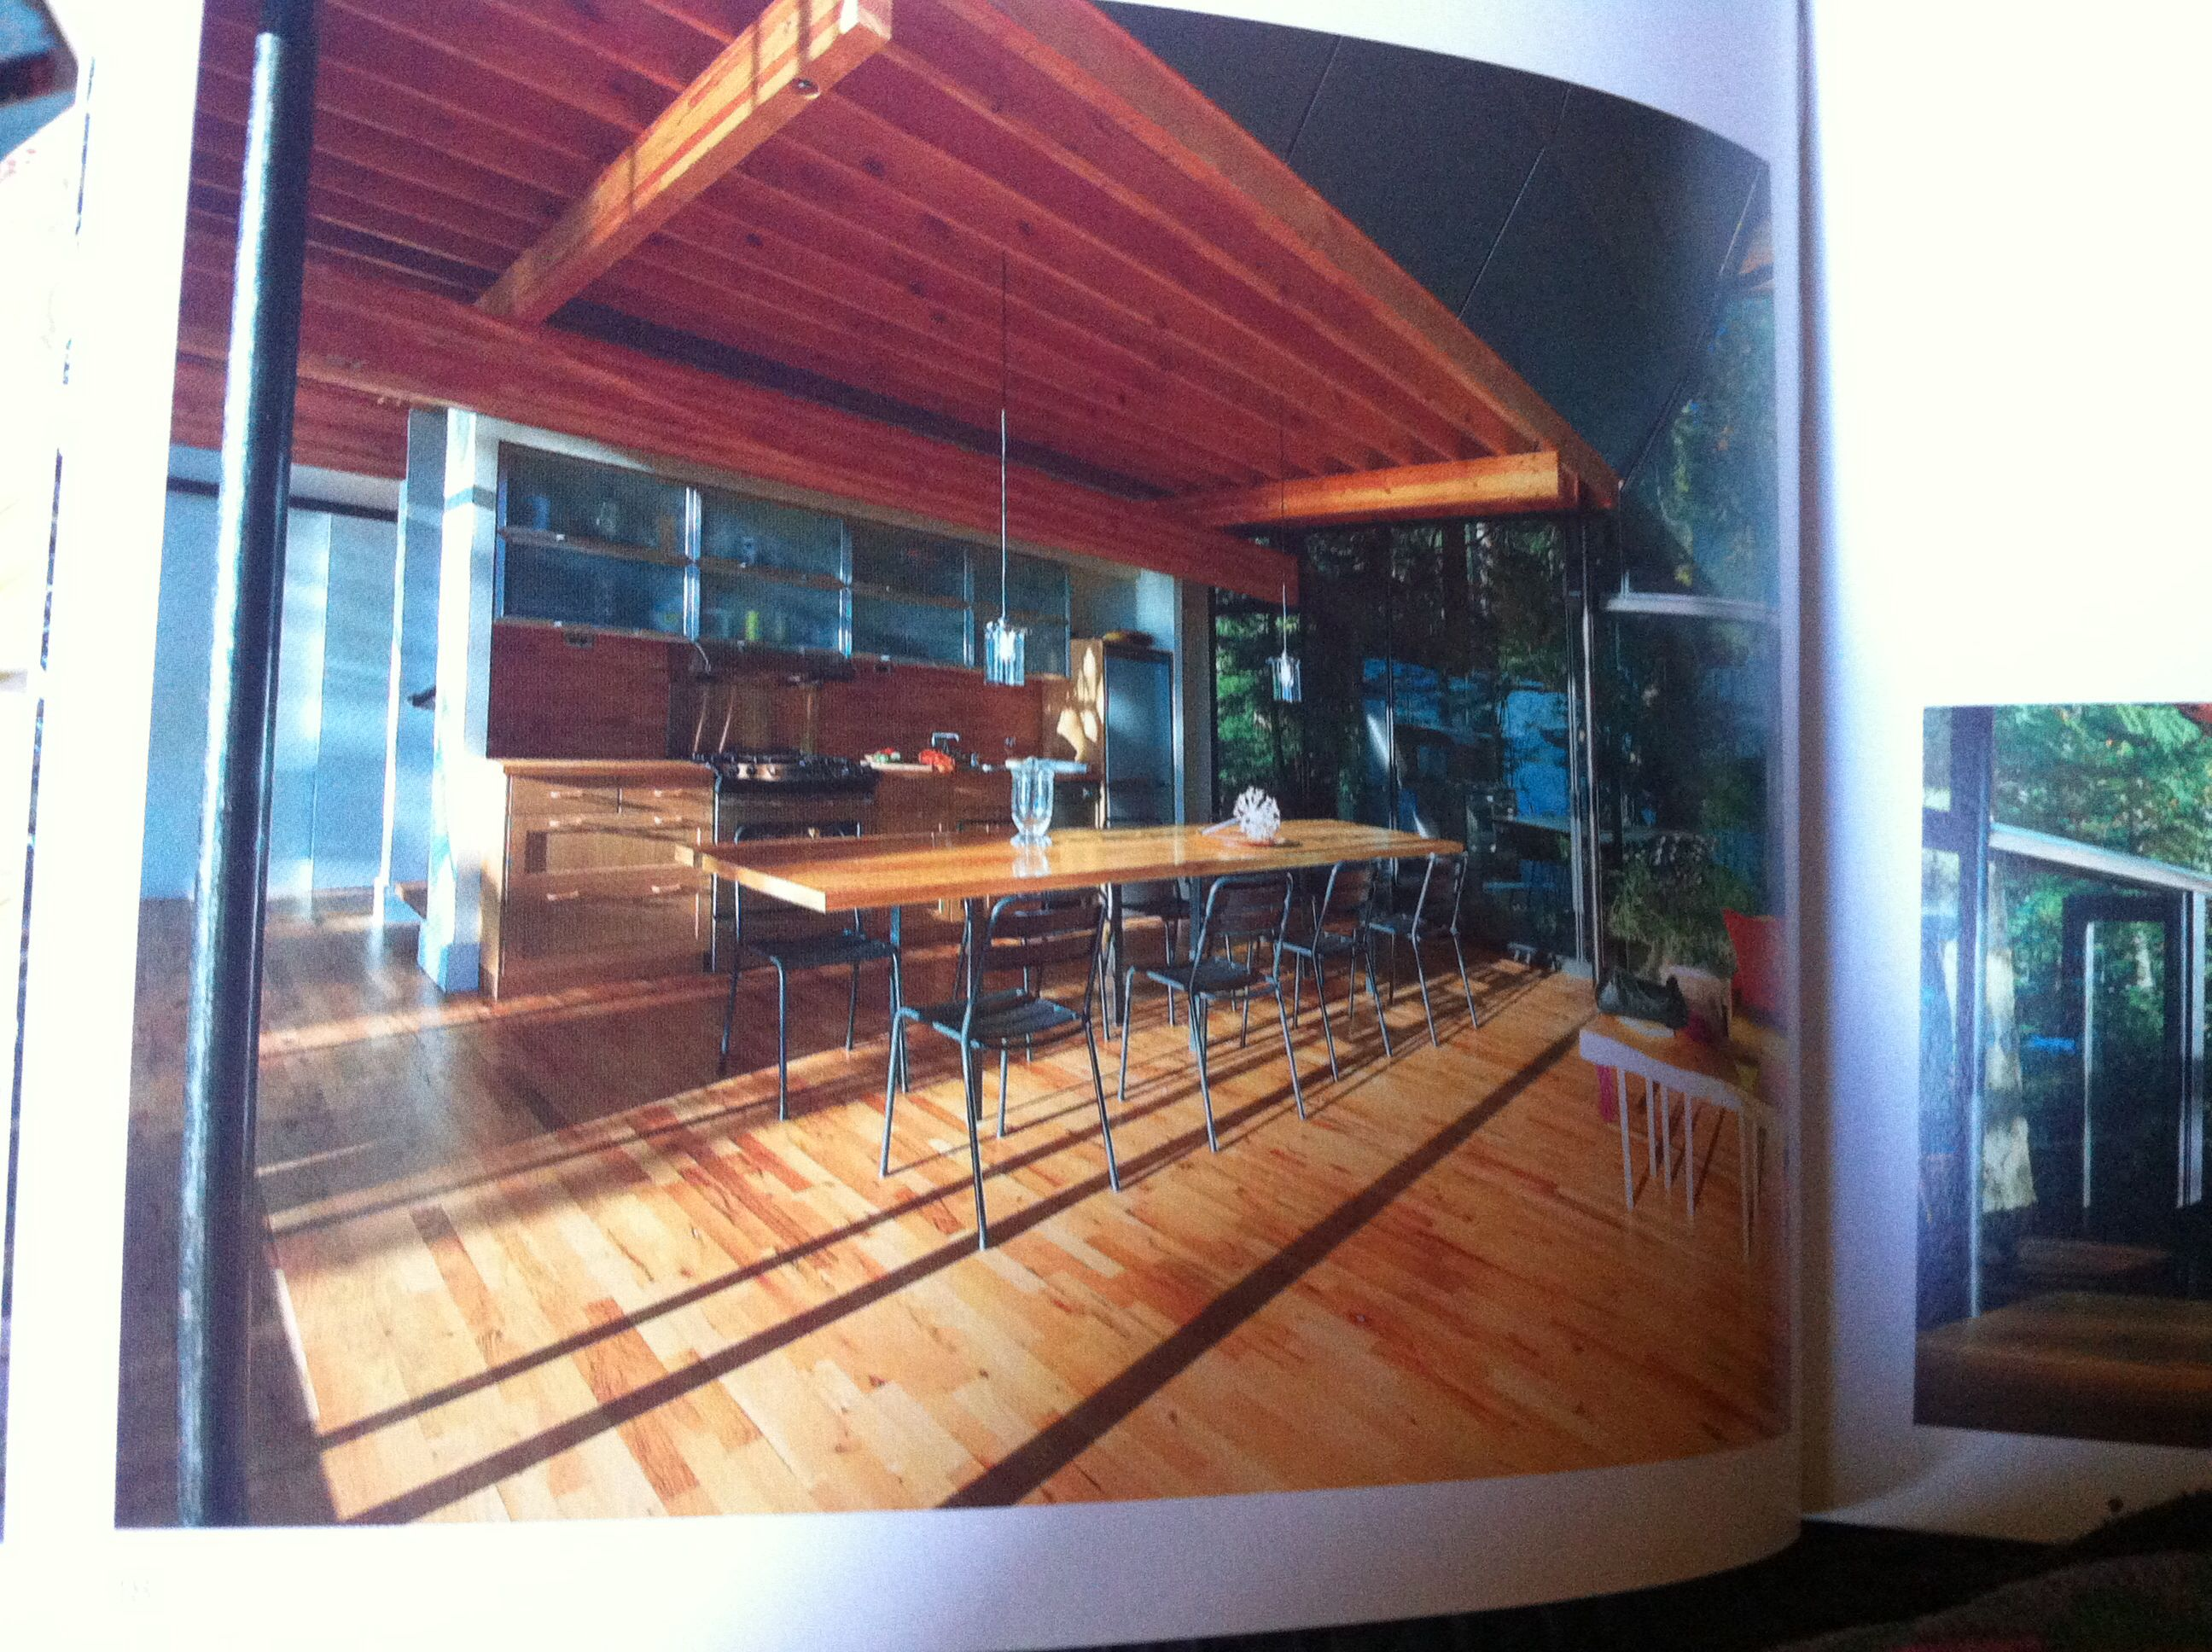 Timber floors, natural light